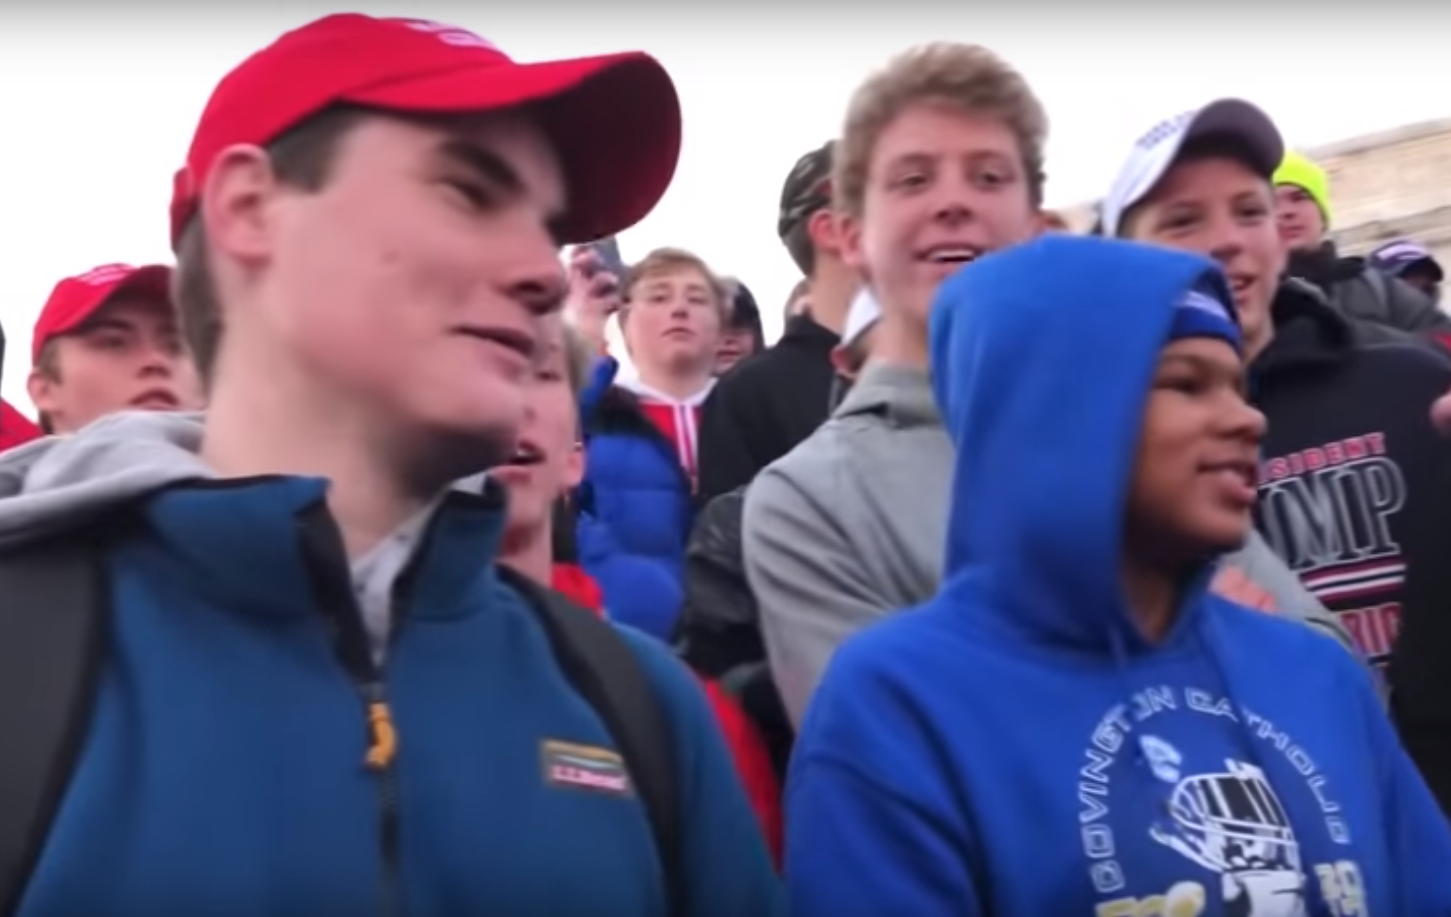 Several members of the radical Black Hebrew Israelites religious group shouted slurs and criticism at the Covington High School students. (Image: YouTube/Screenshot)